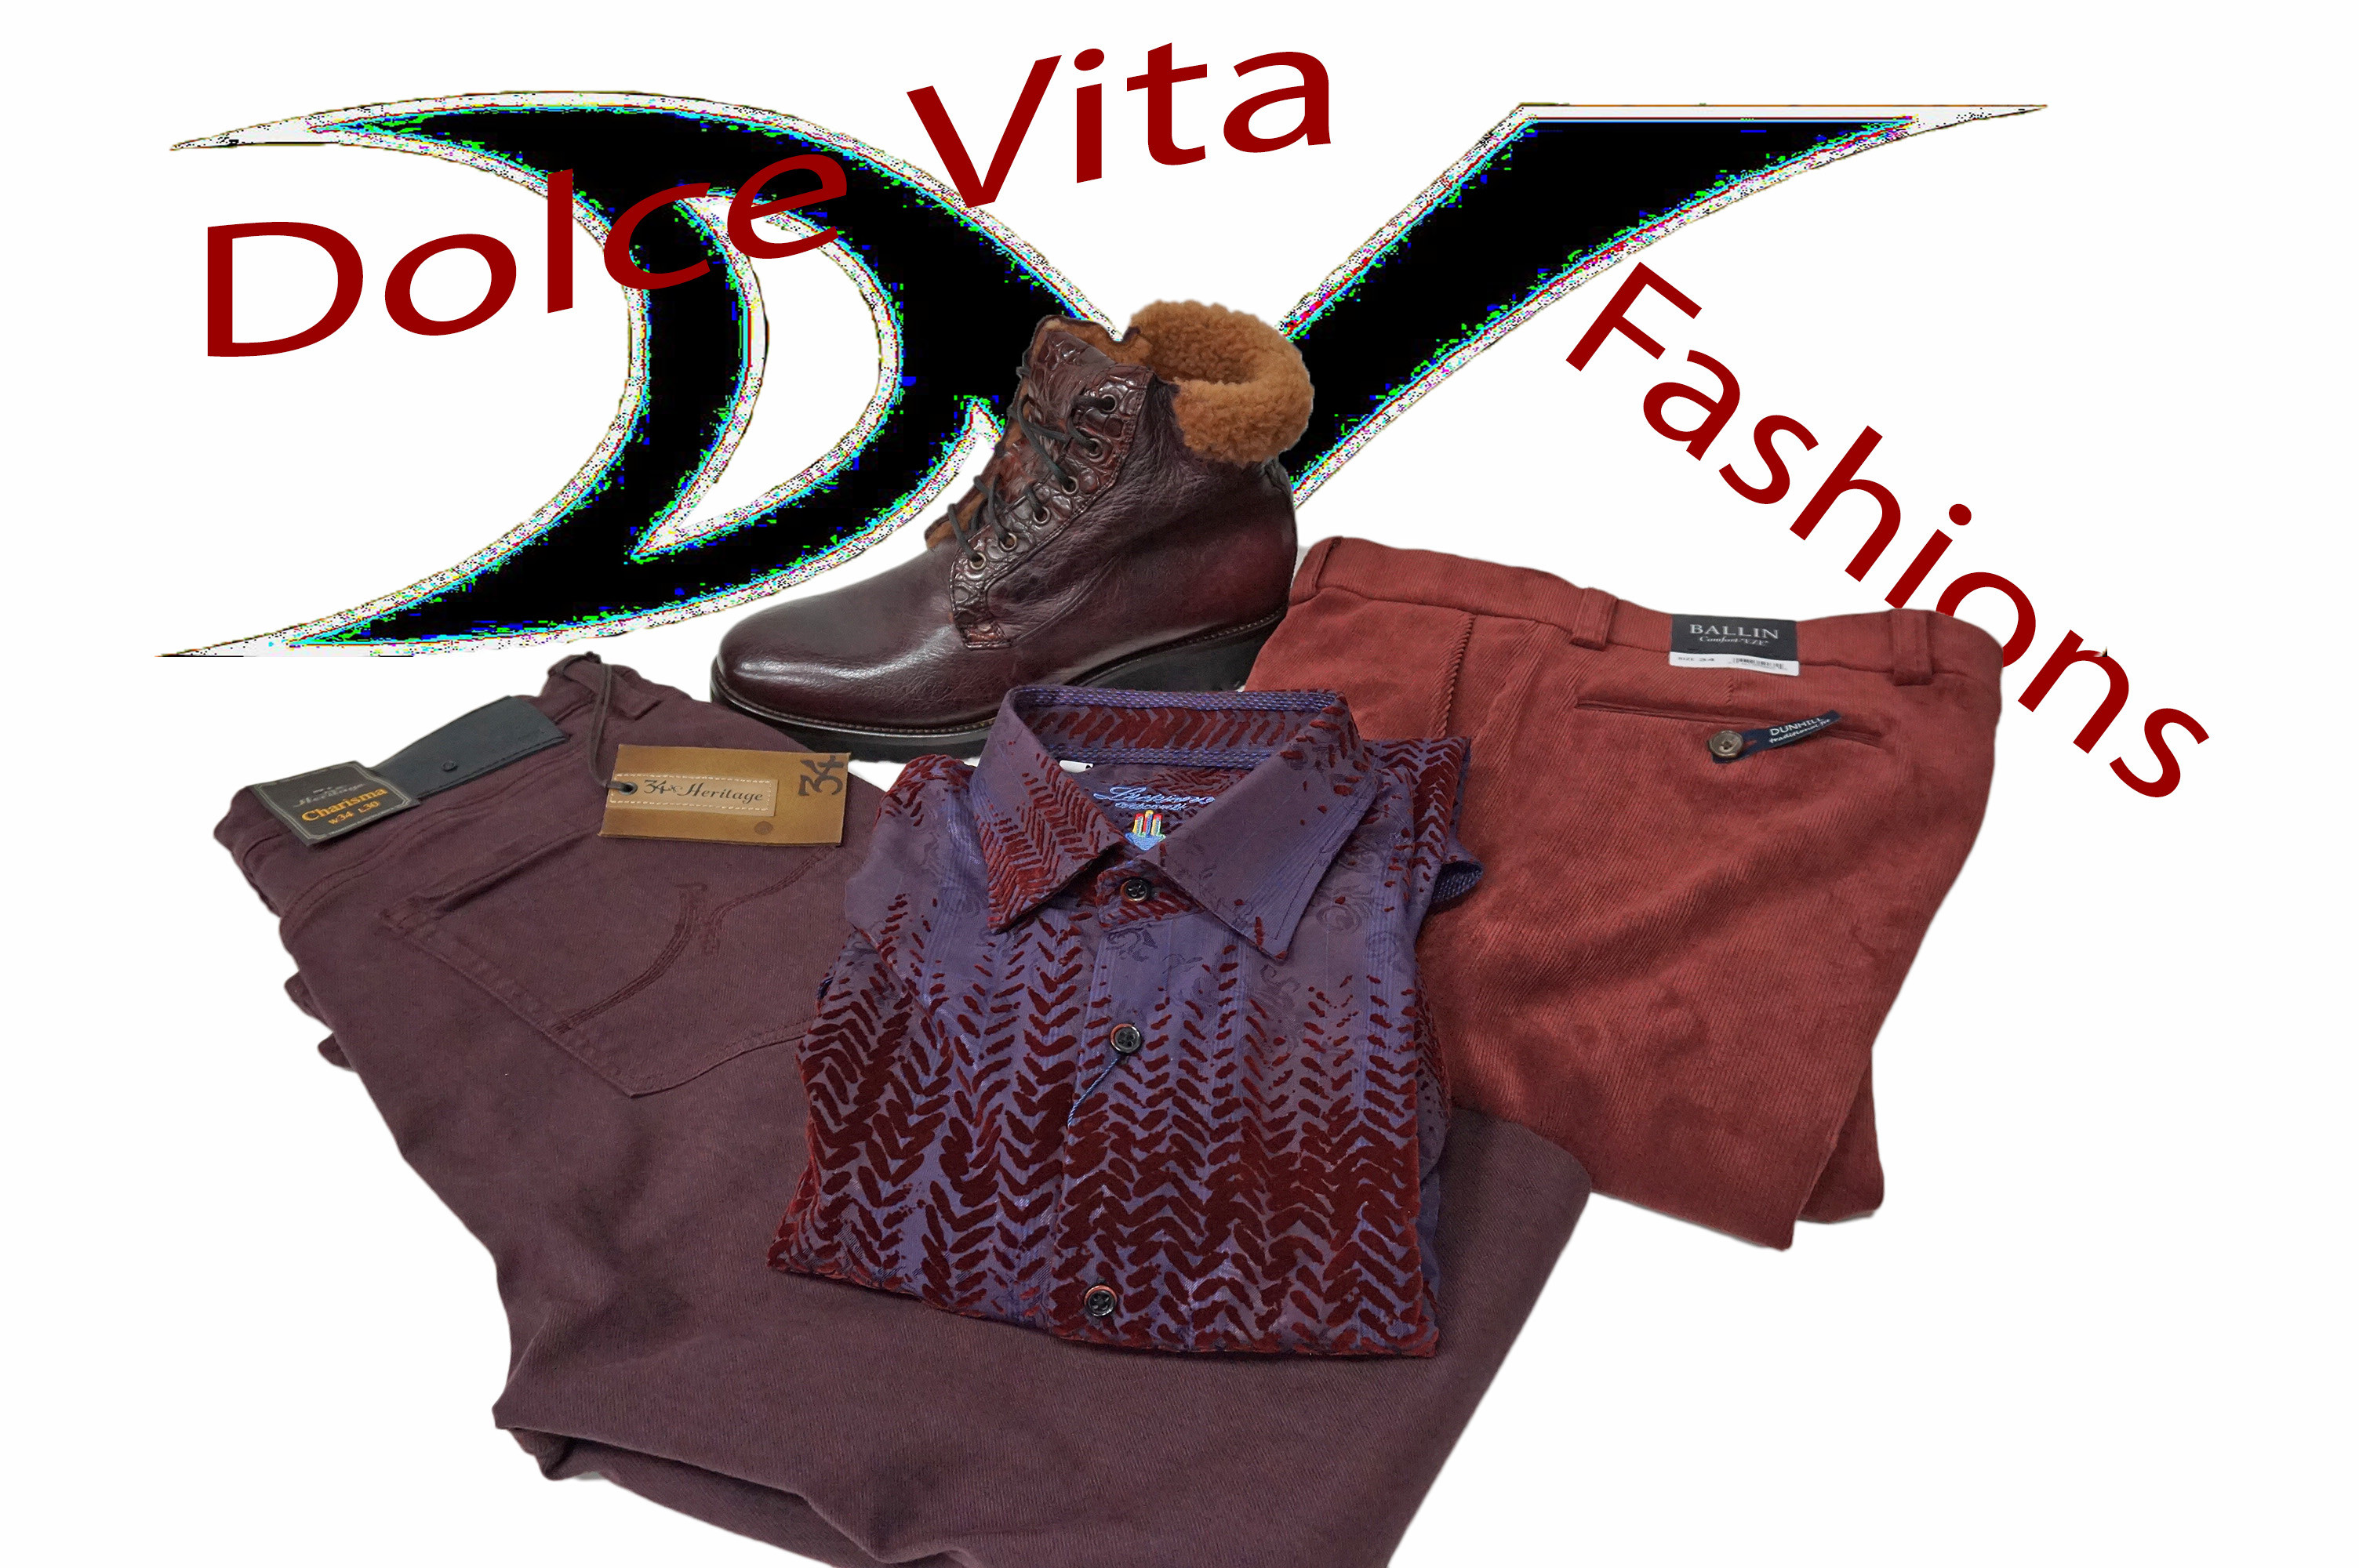 brand new ced6f e091c Mens Online Shop | United States | Dolce Vita Leather & Fashions